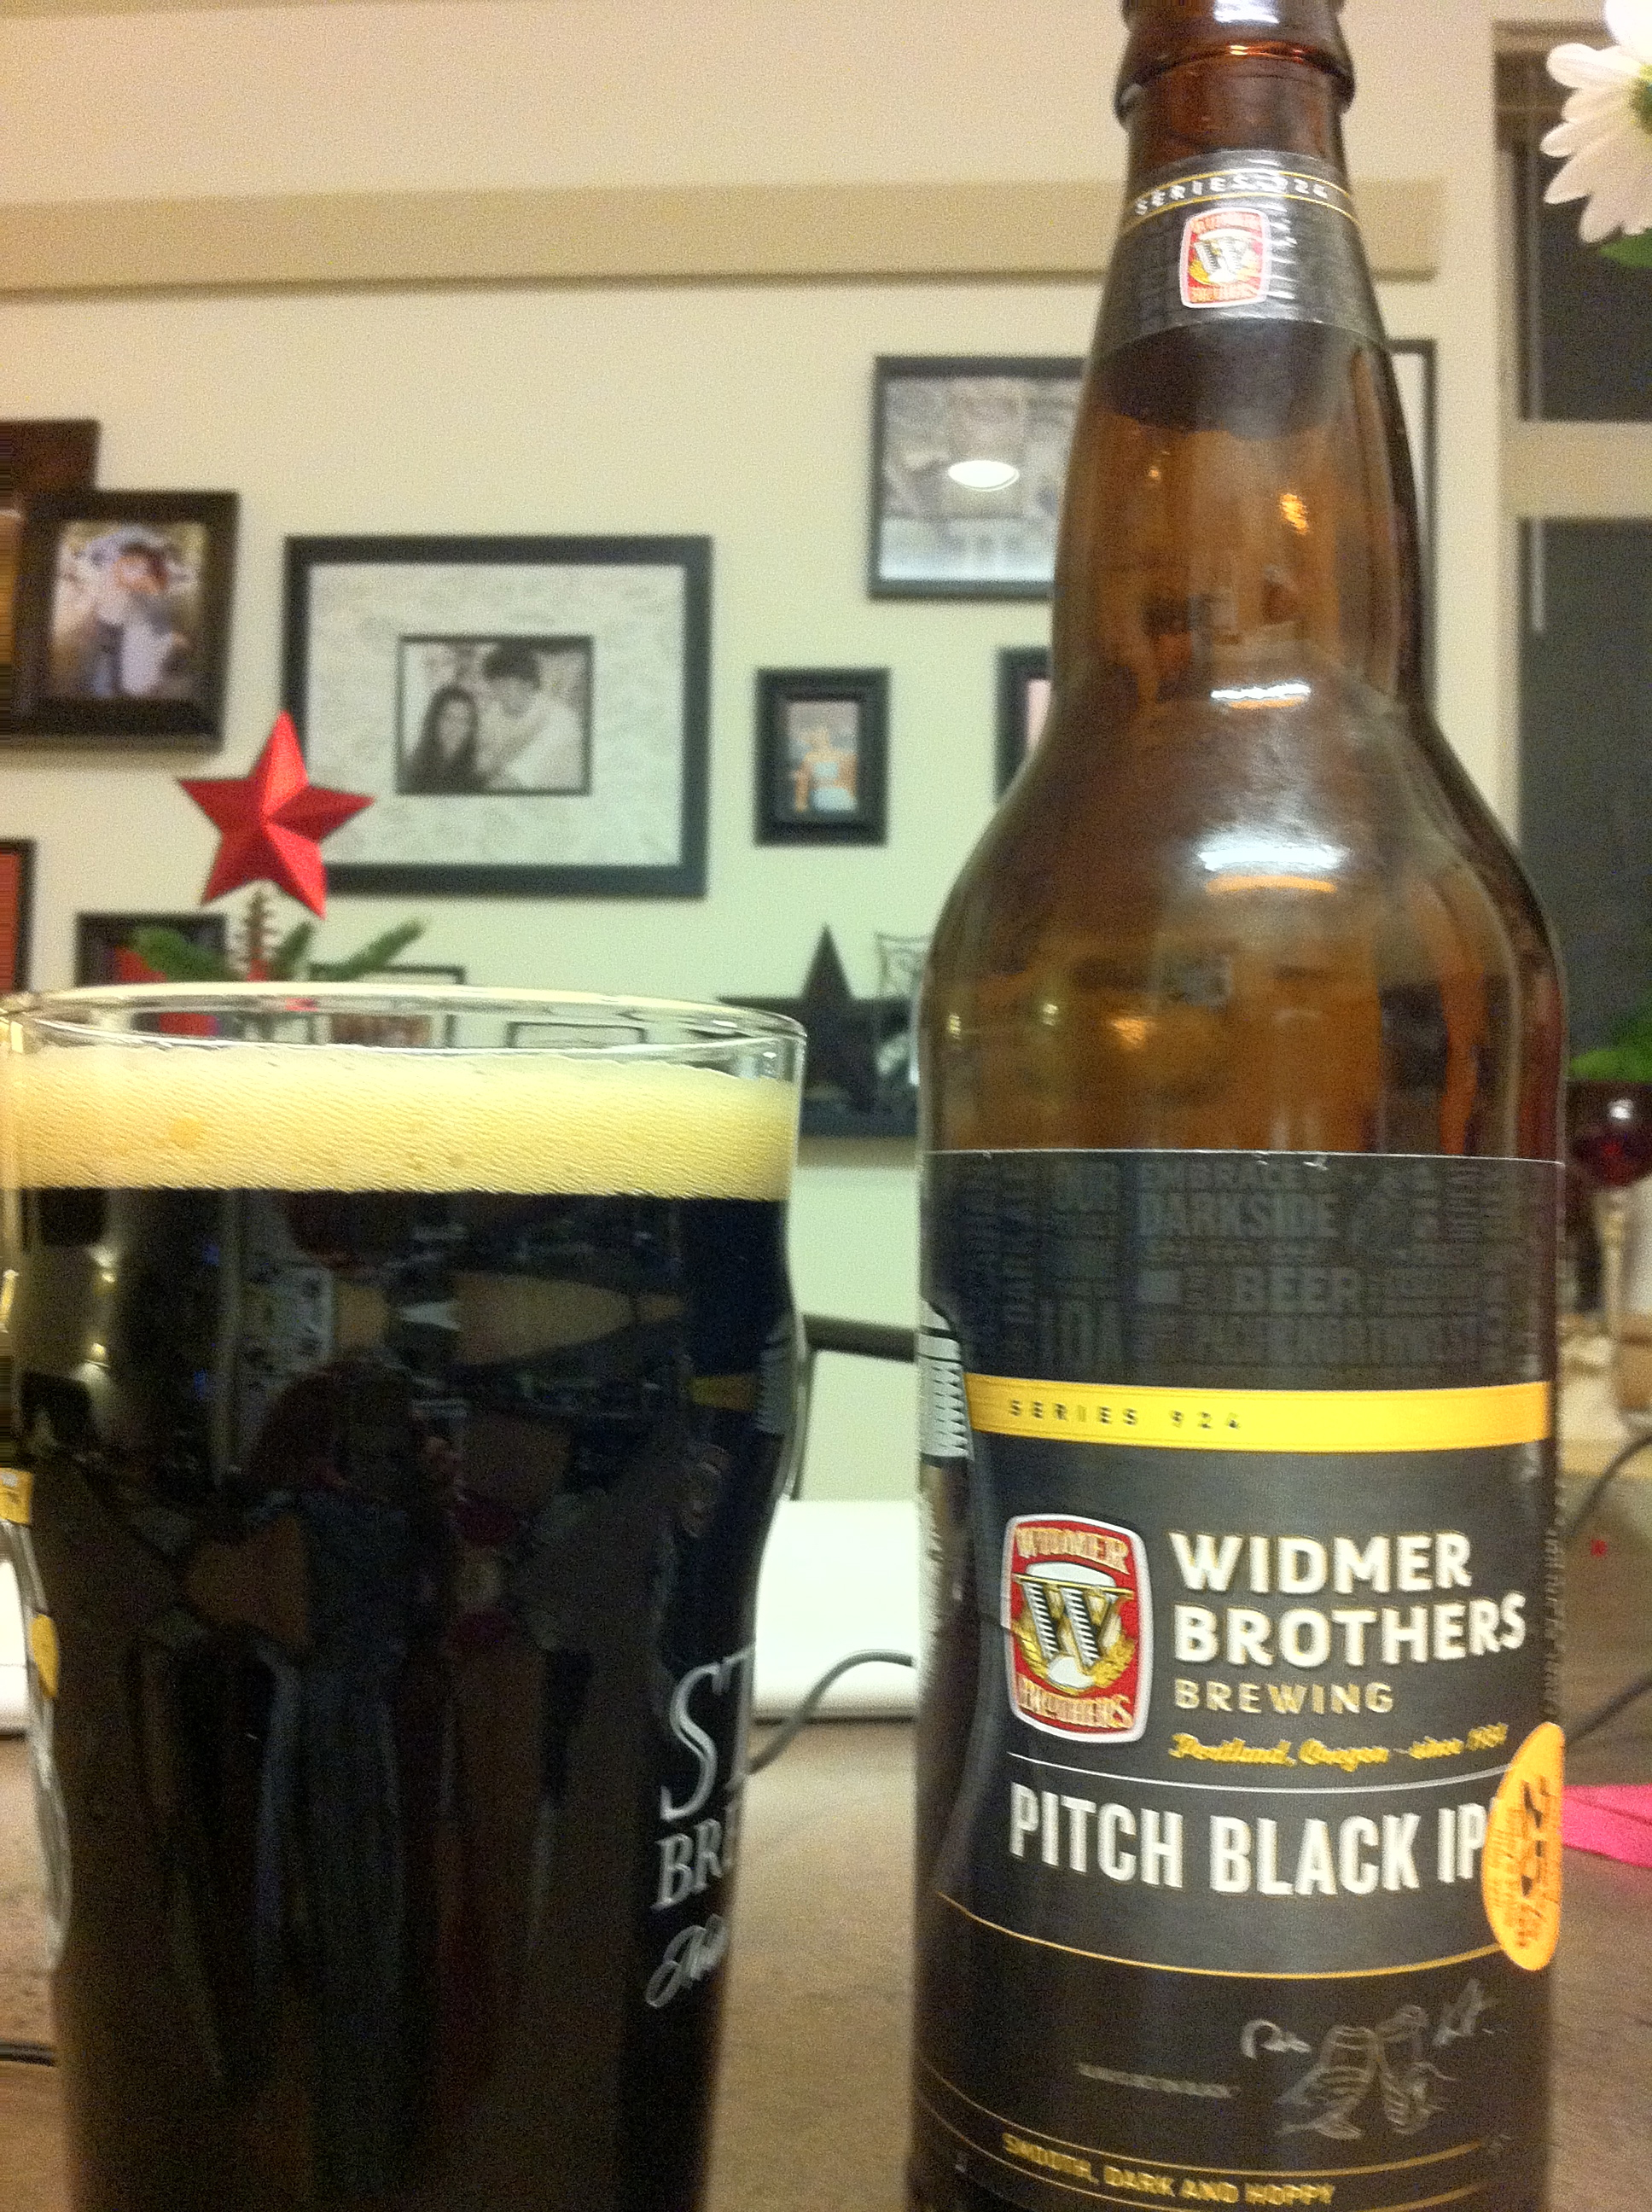 Brewbeat NW – Widmer Brothers Pitch Black IPA